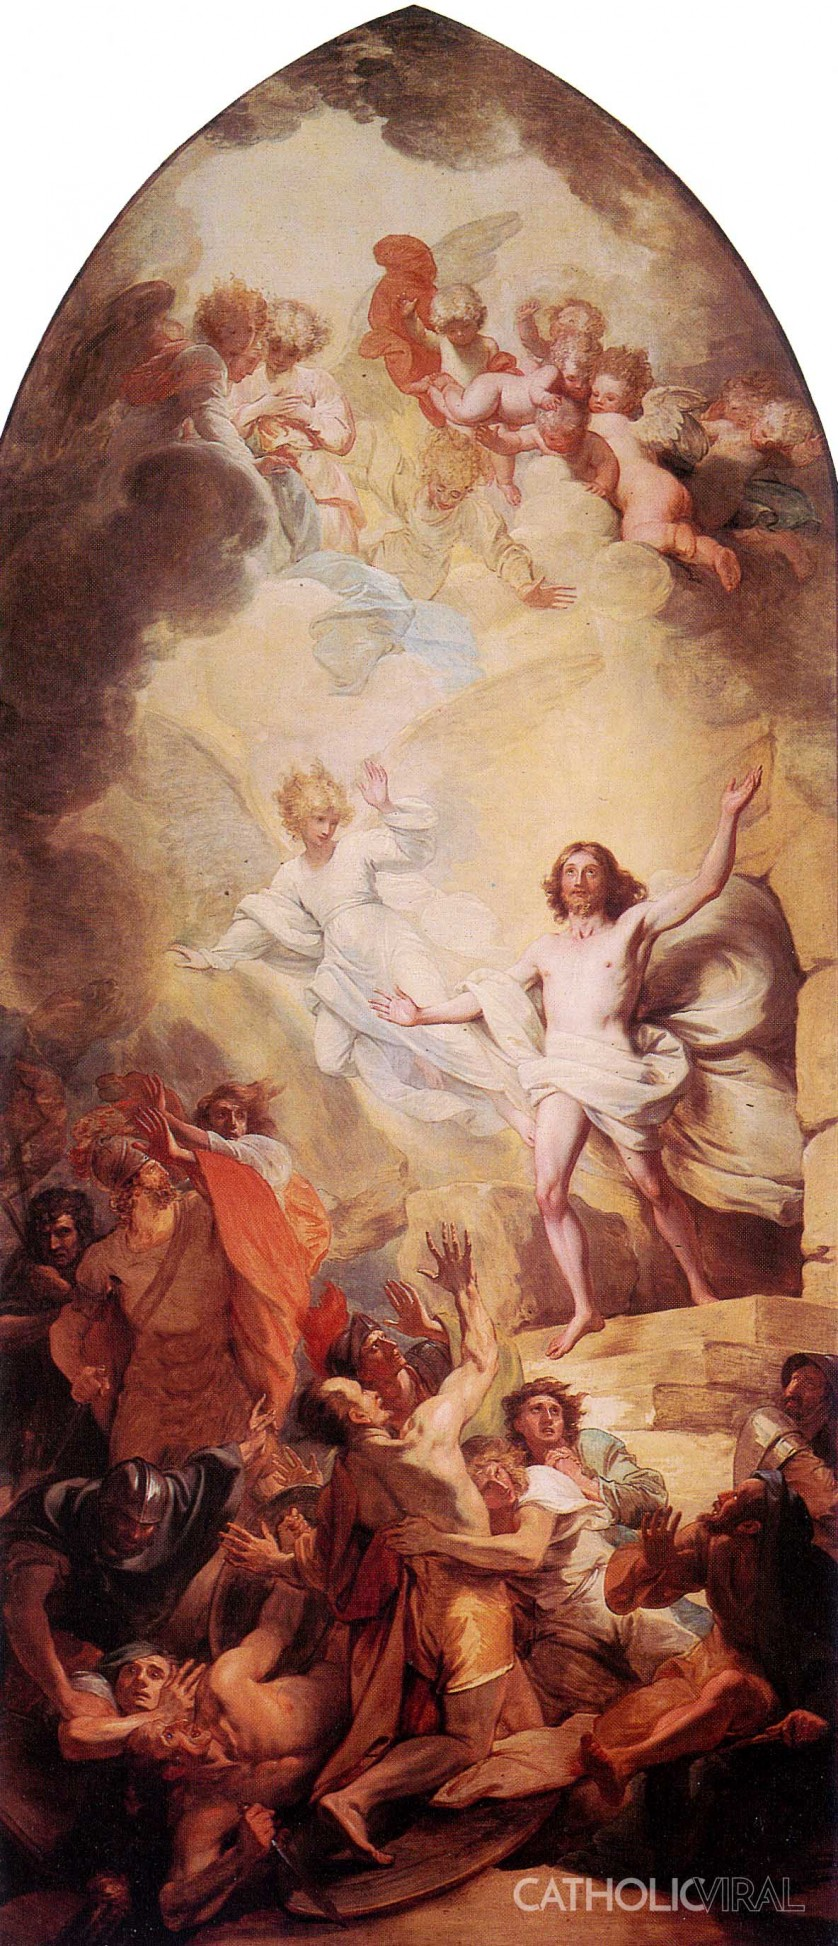 Resurrection - West - 54 Paintings of the Passion, Death and Resurrection of Jesus Christ